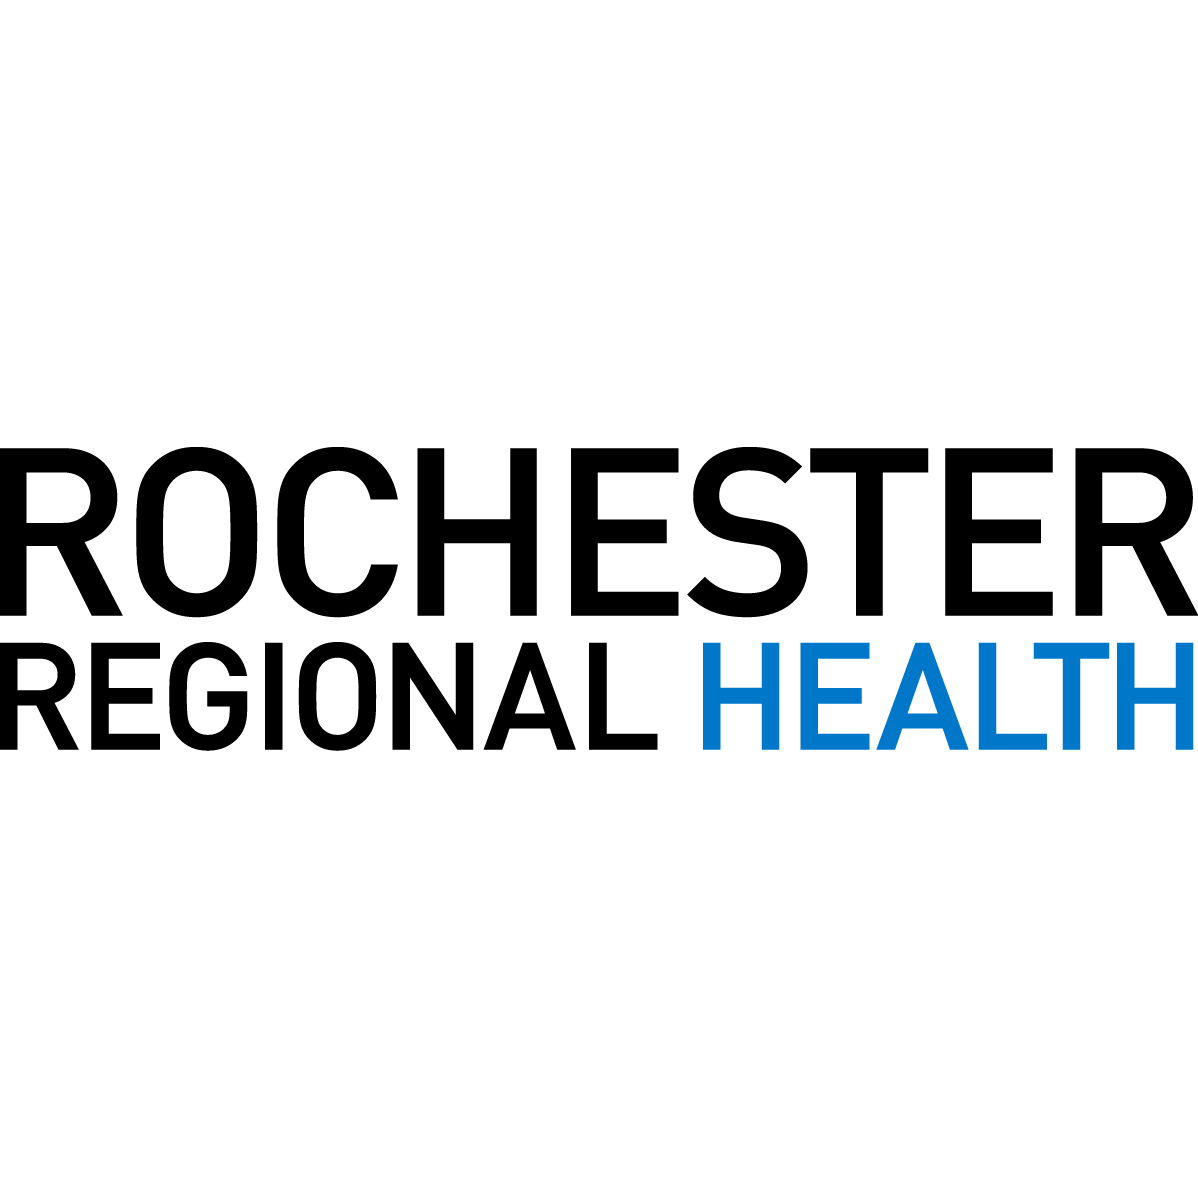 Next is Now at Rochester Regional Health